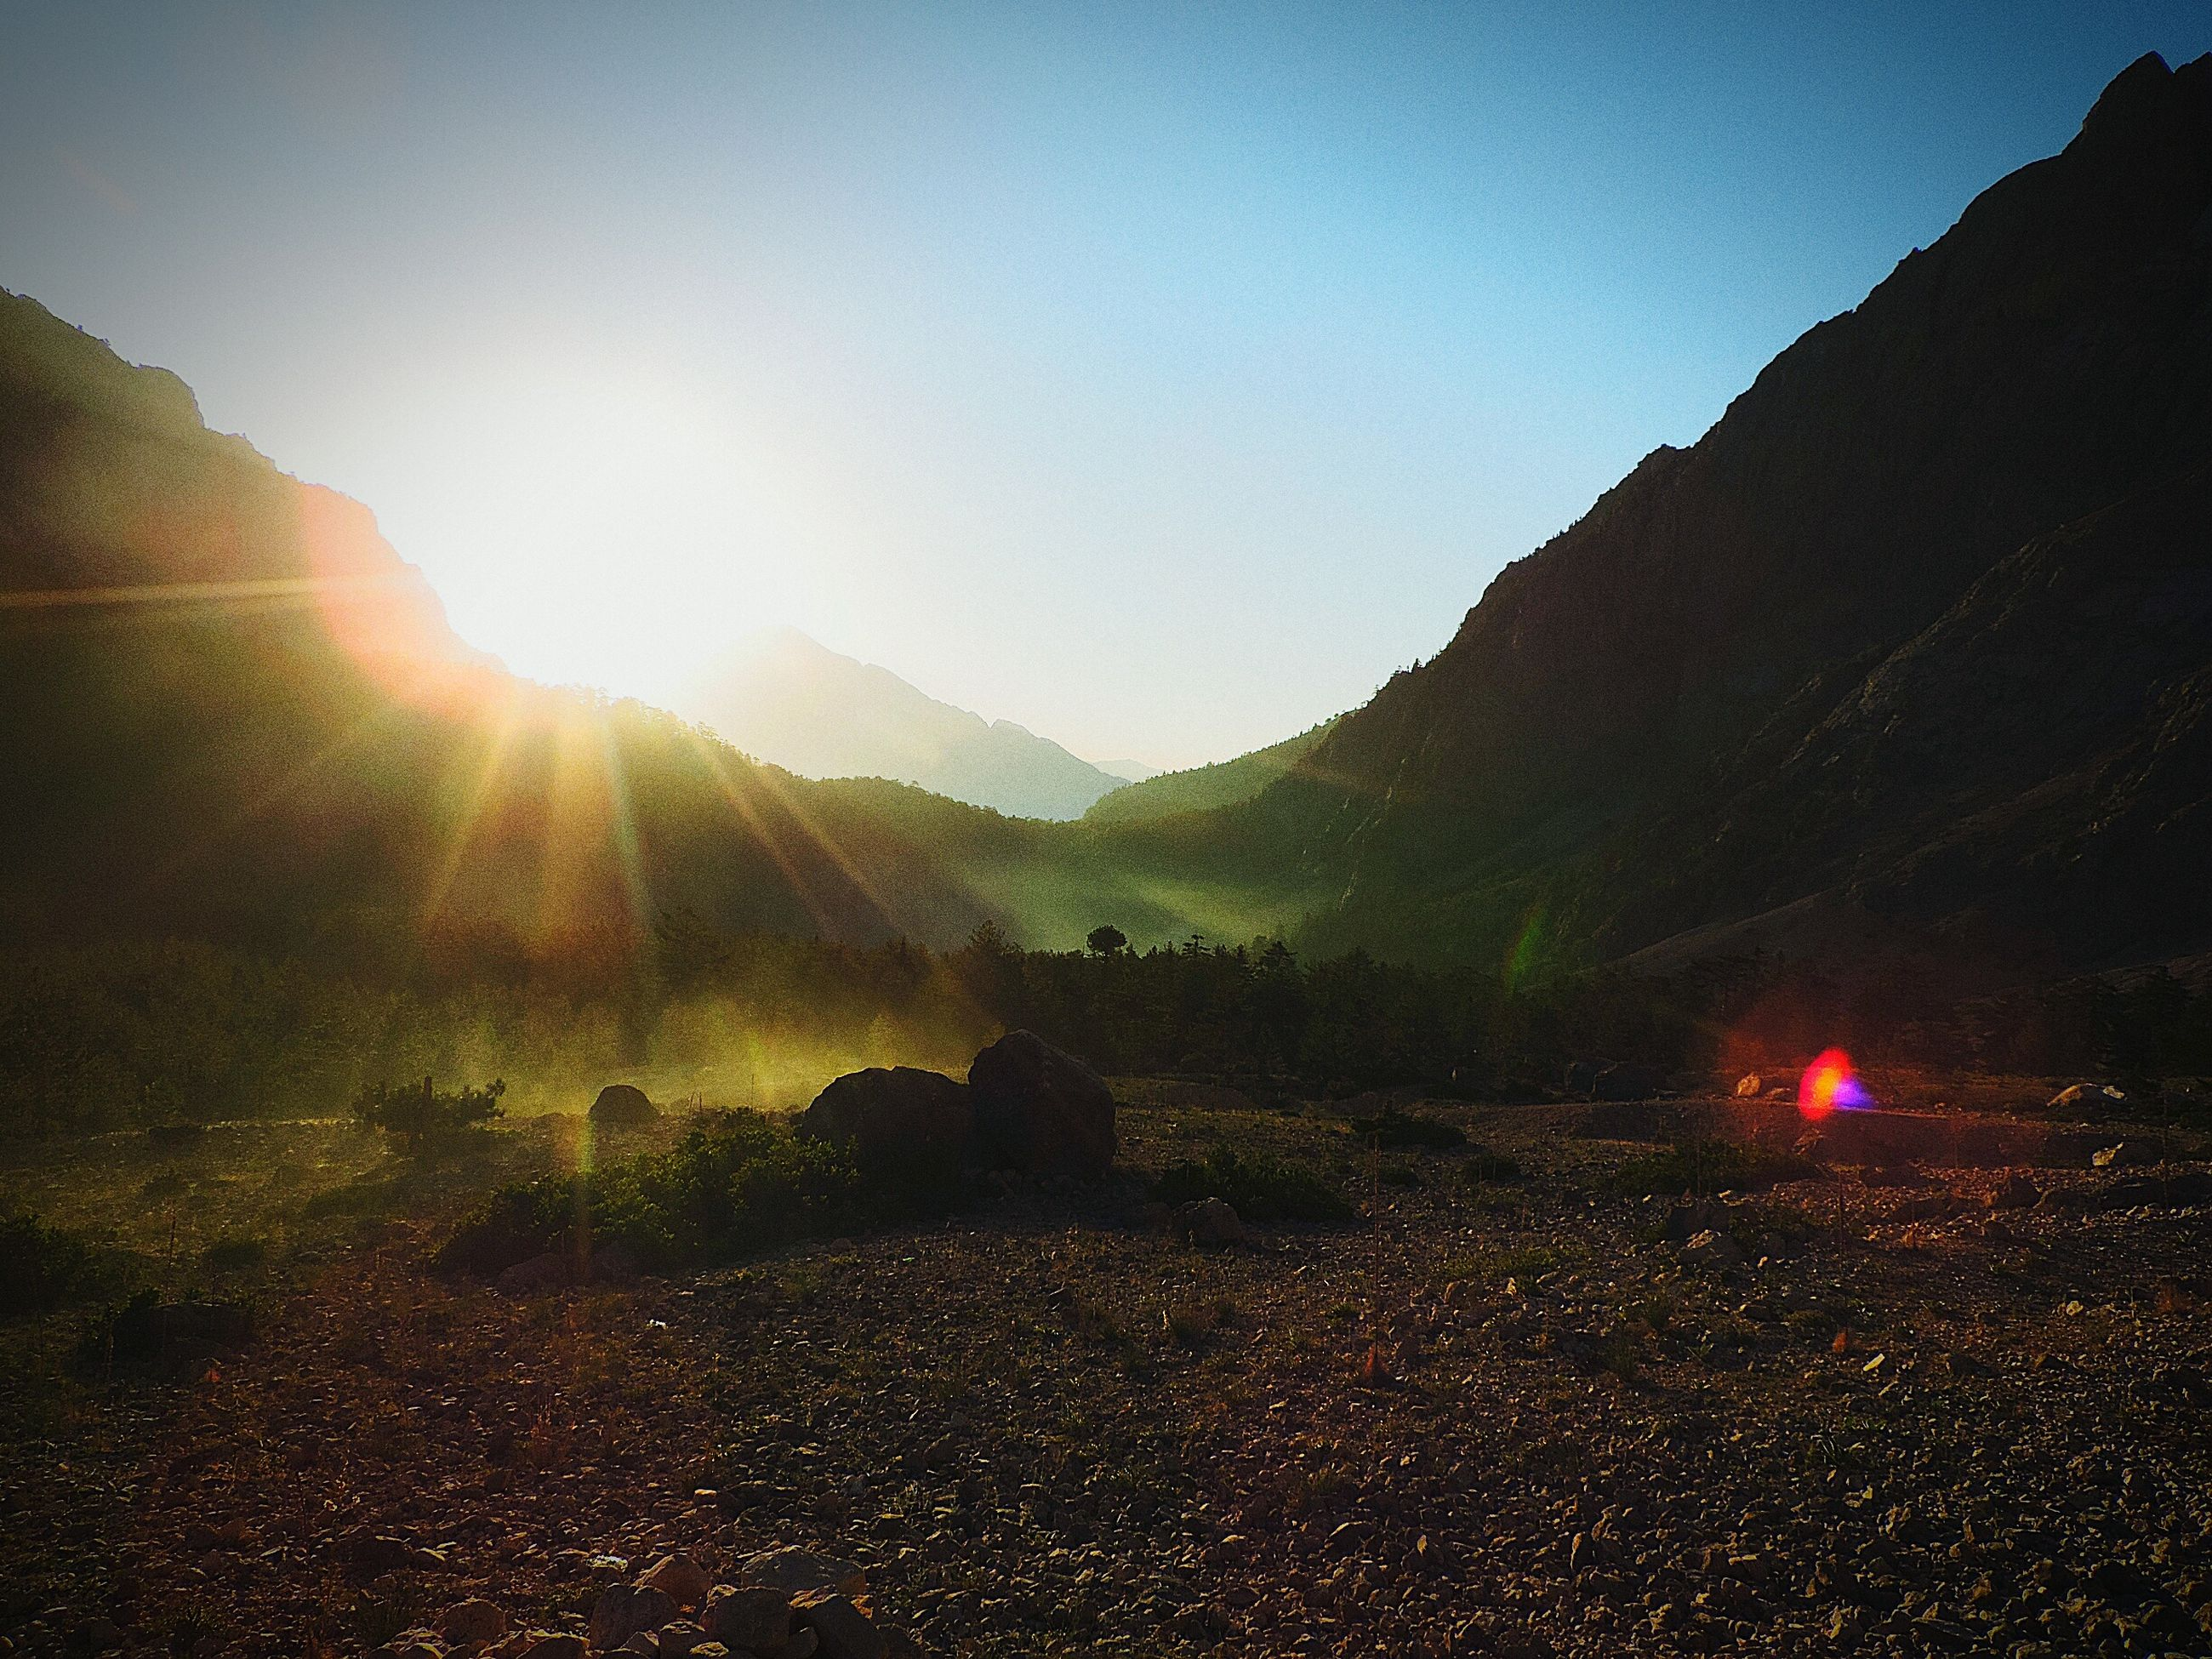 mountain, sun, tranquility, tranquil scene, clear sky, scenics, lens flare, mountain range, landscape, sunlight, beauty in nature, sunbeam, nature, sunset, silhouette, non-urban scene, idyllic, sky, copy space, remote